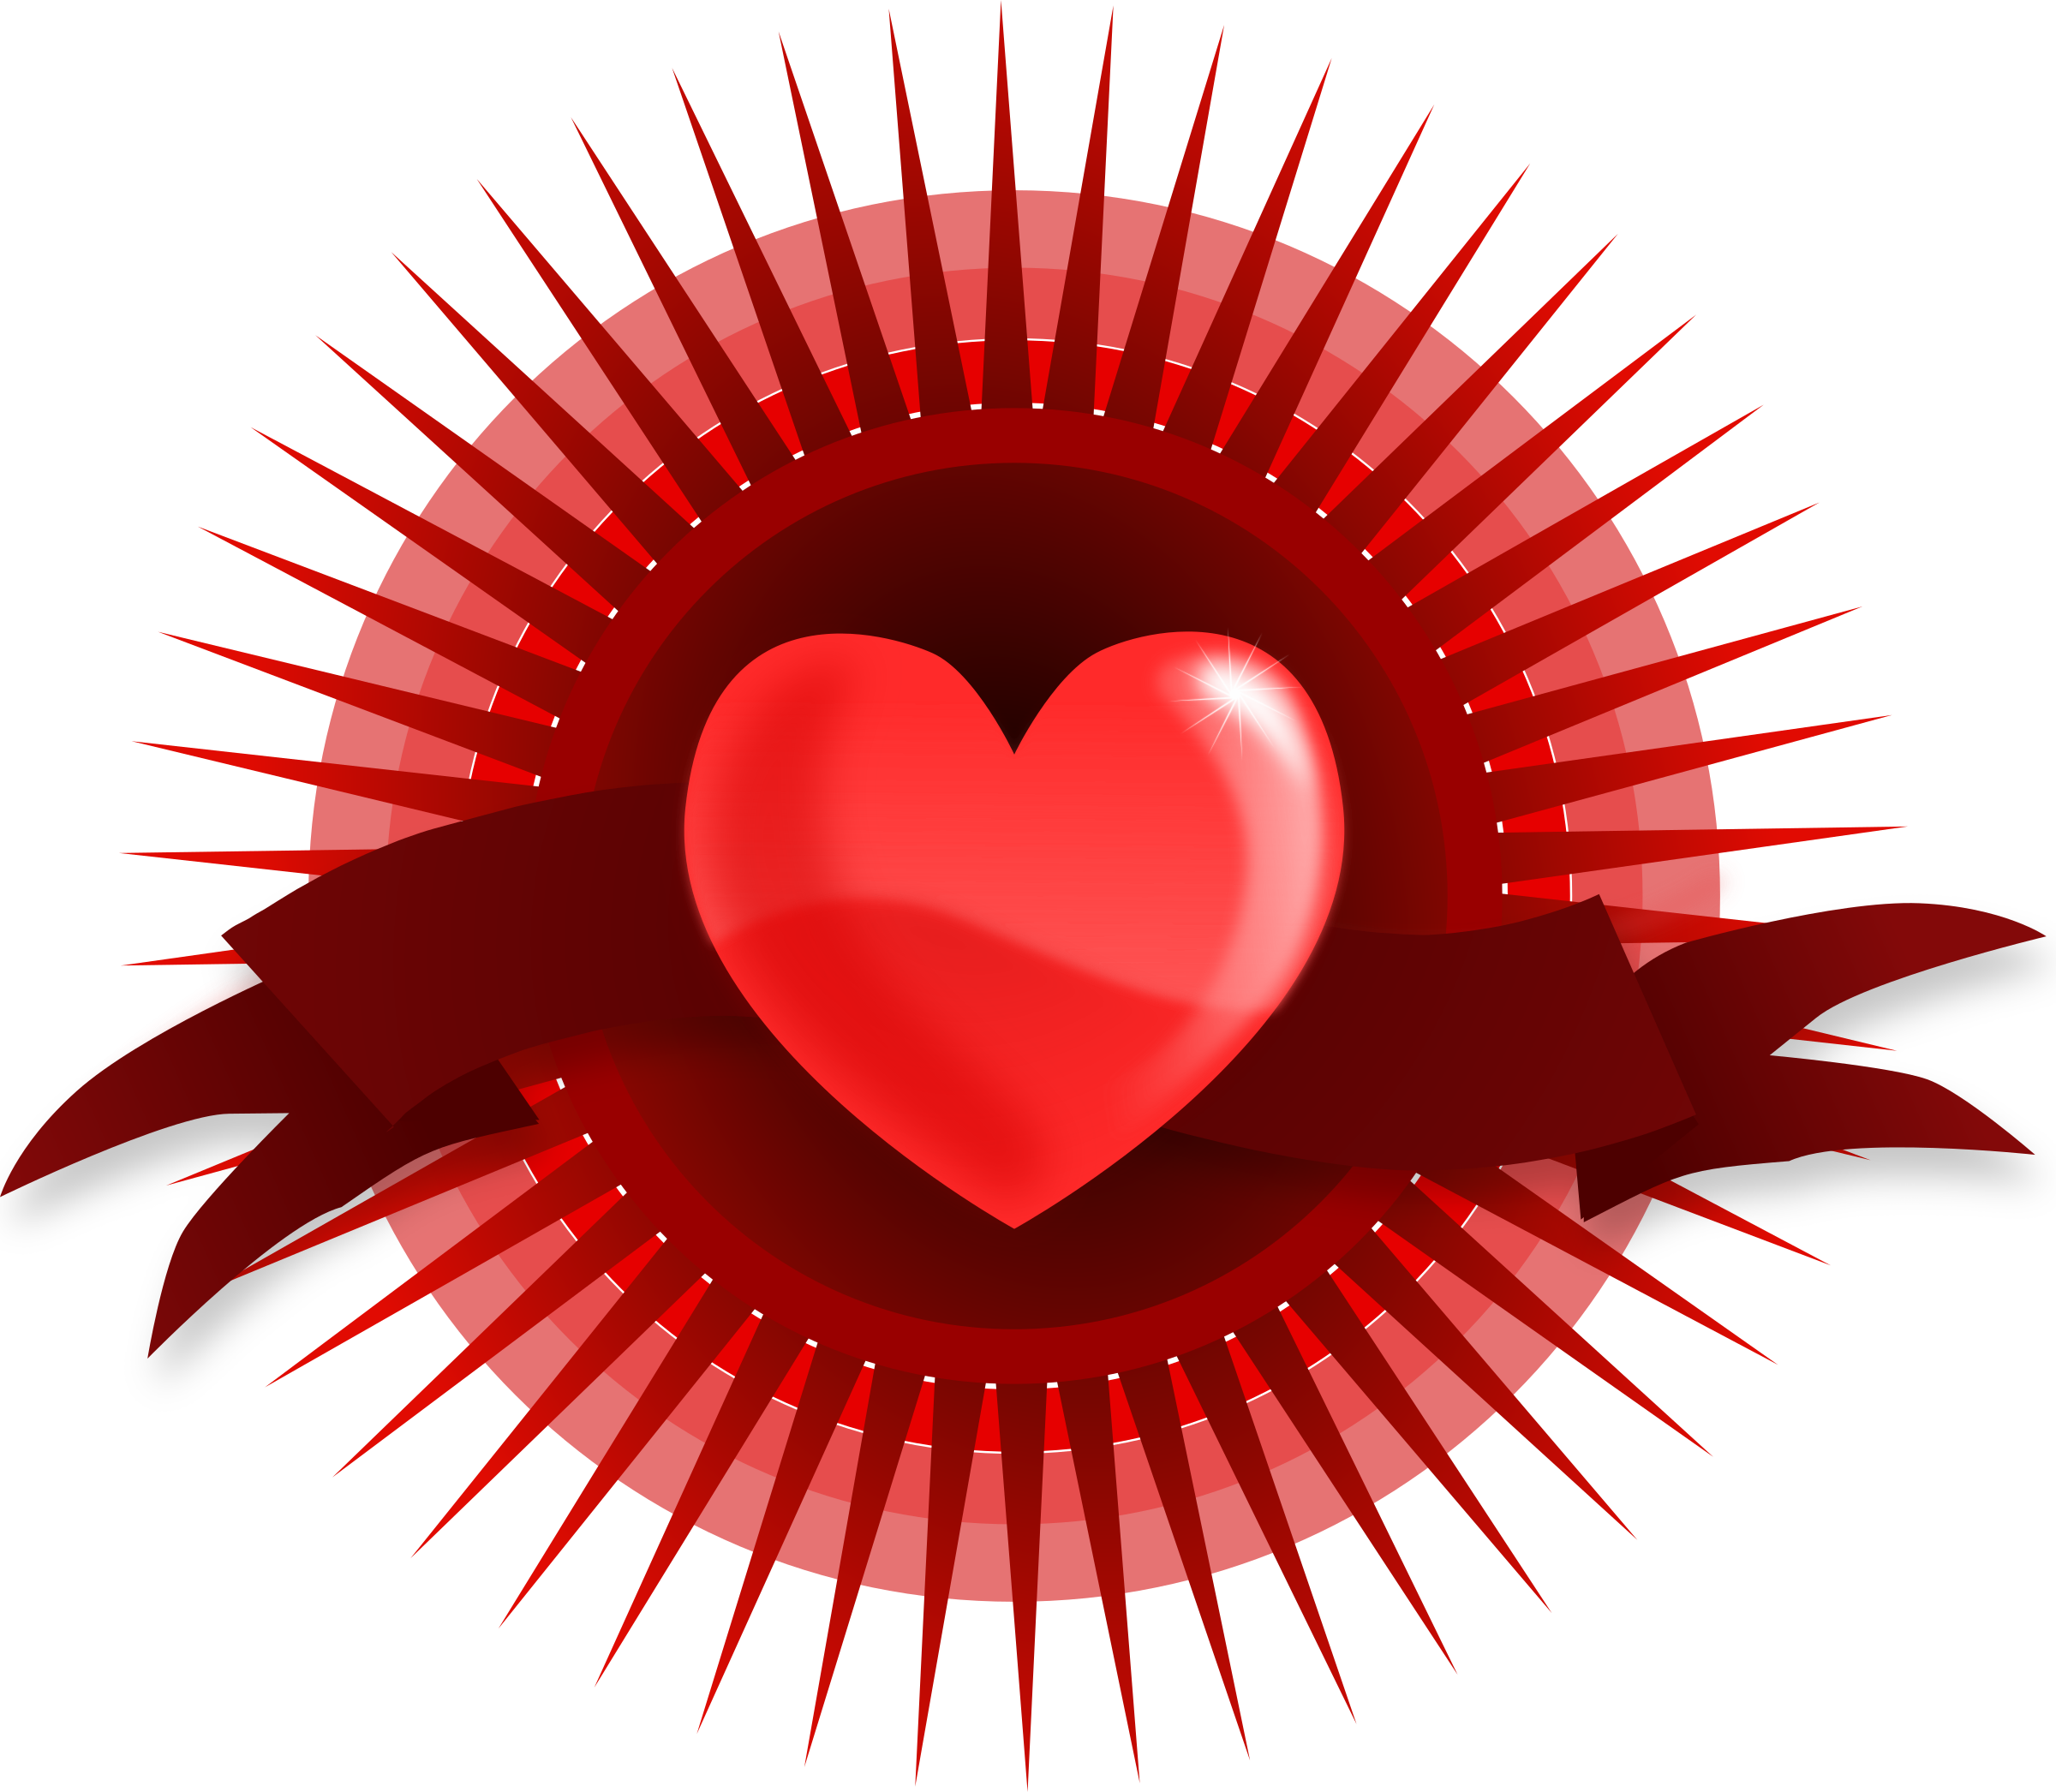 Free heart with wings clipart clipart library download Clipart - Heart with Rays and Banner clipart library download